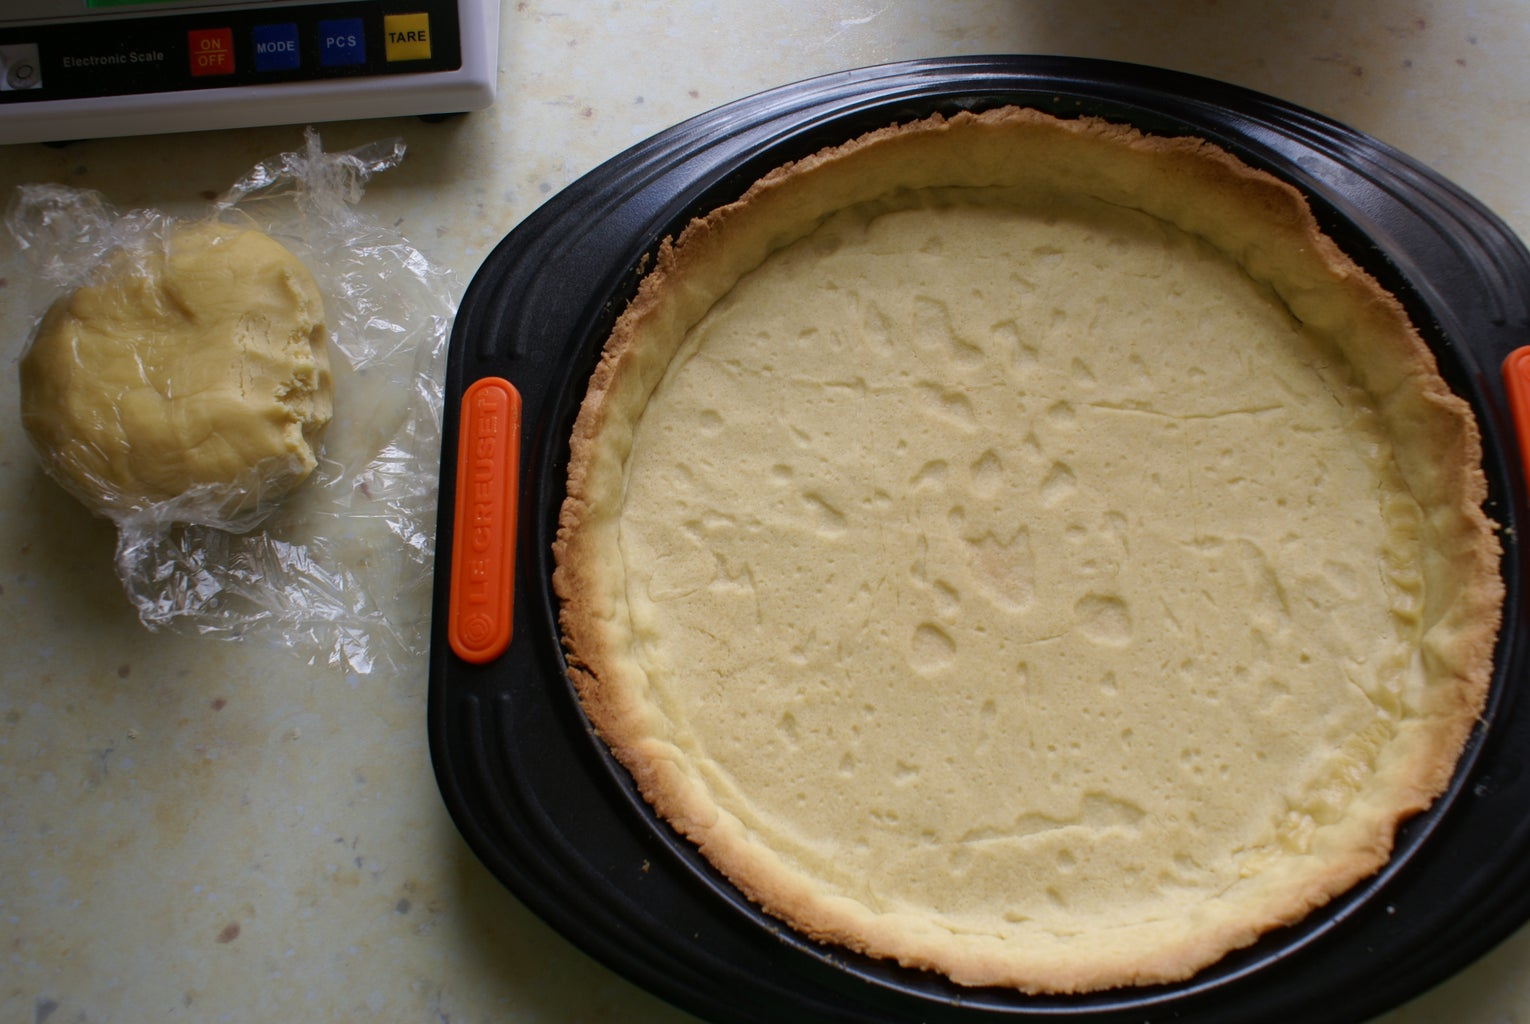 Pour the Appareil in the Crust